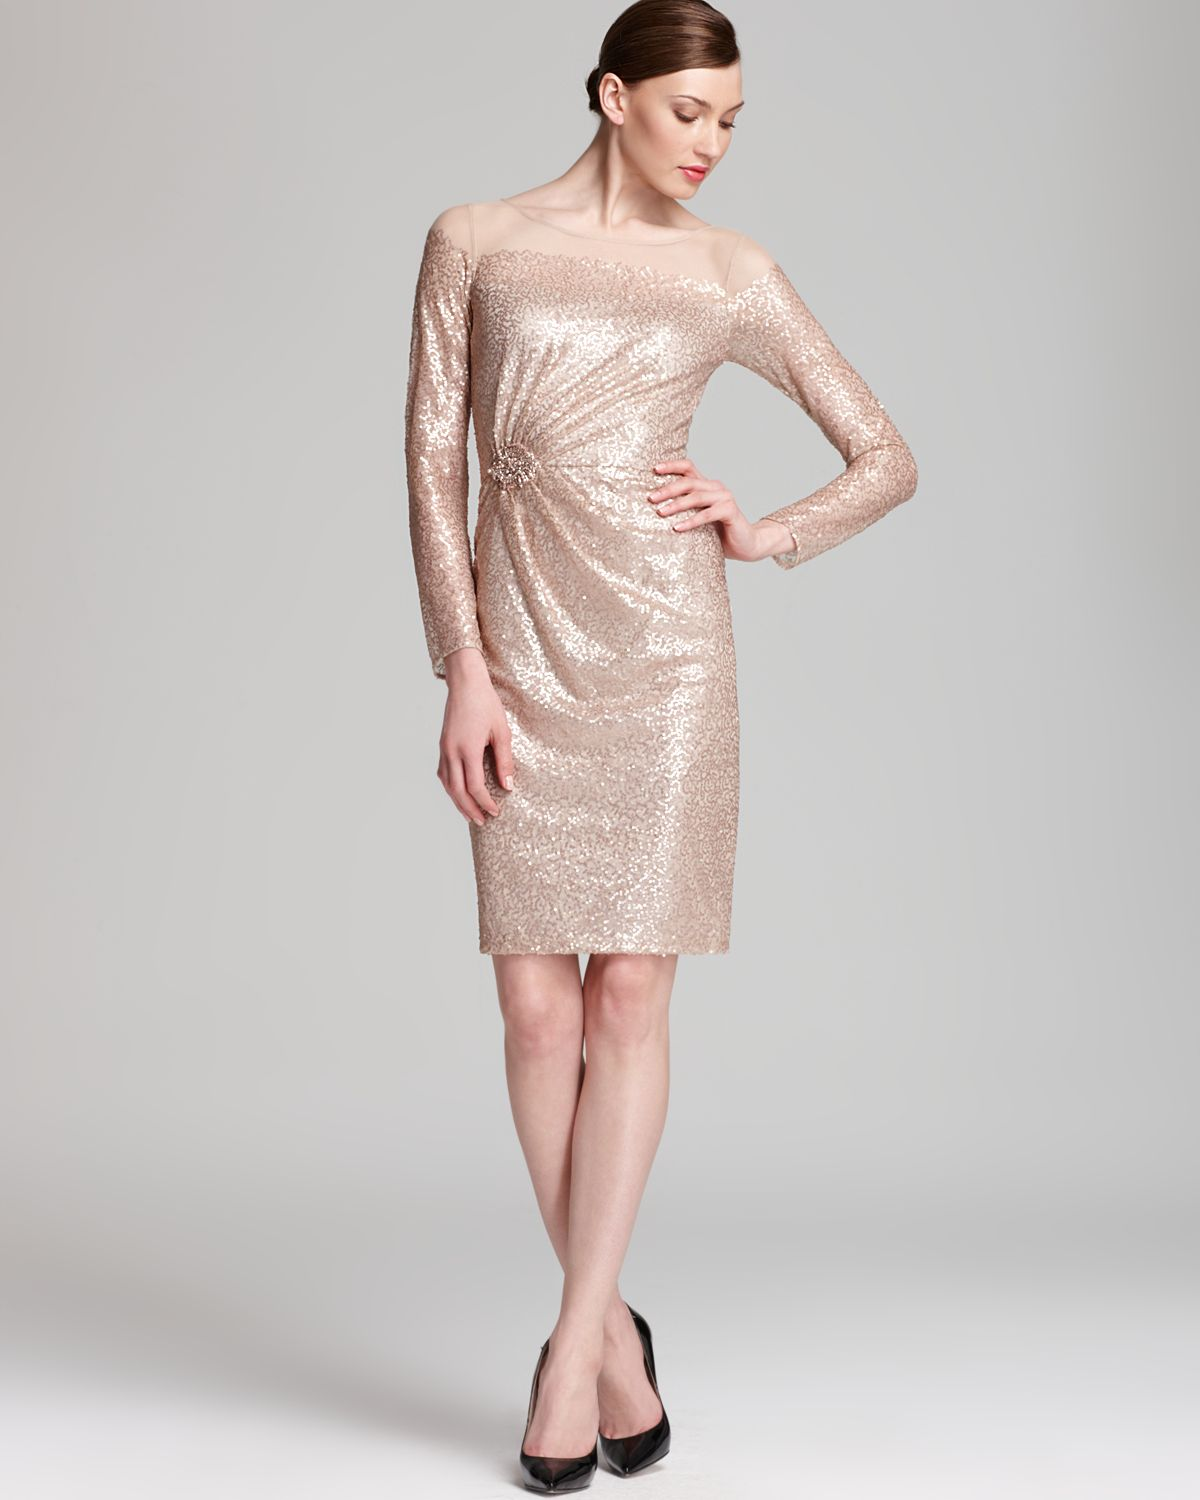 David meister Sequin Dress Illusion Long Sleeve in Natural | Lyst